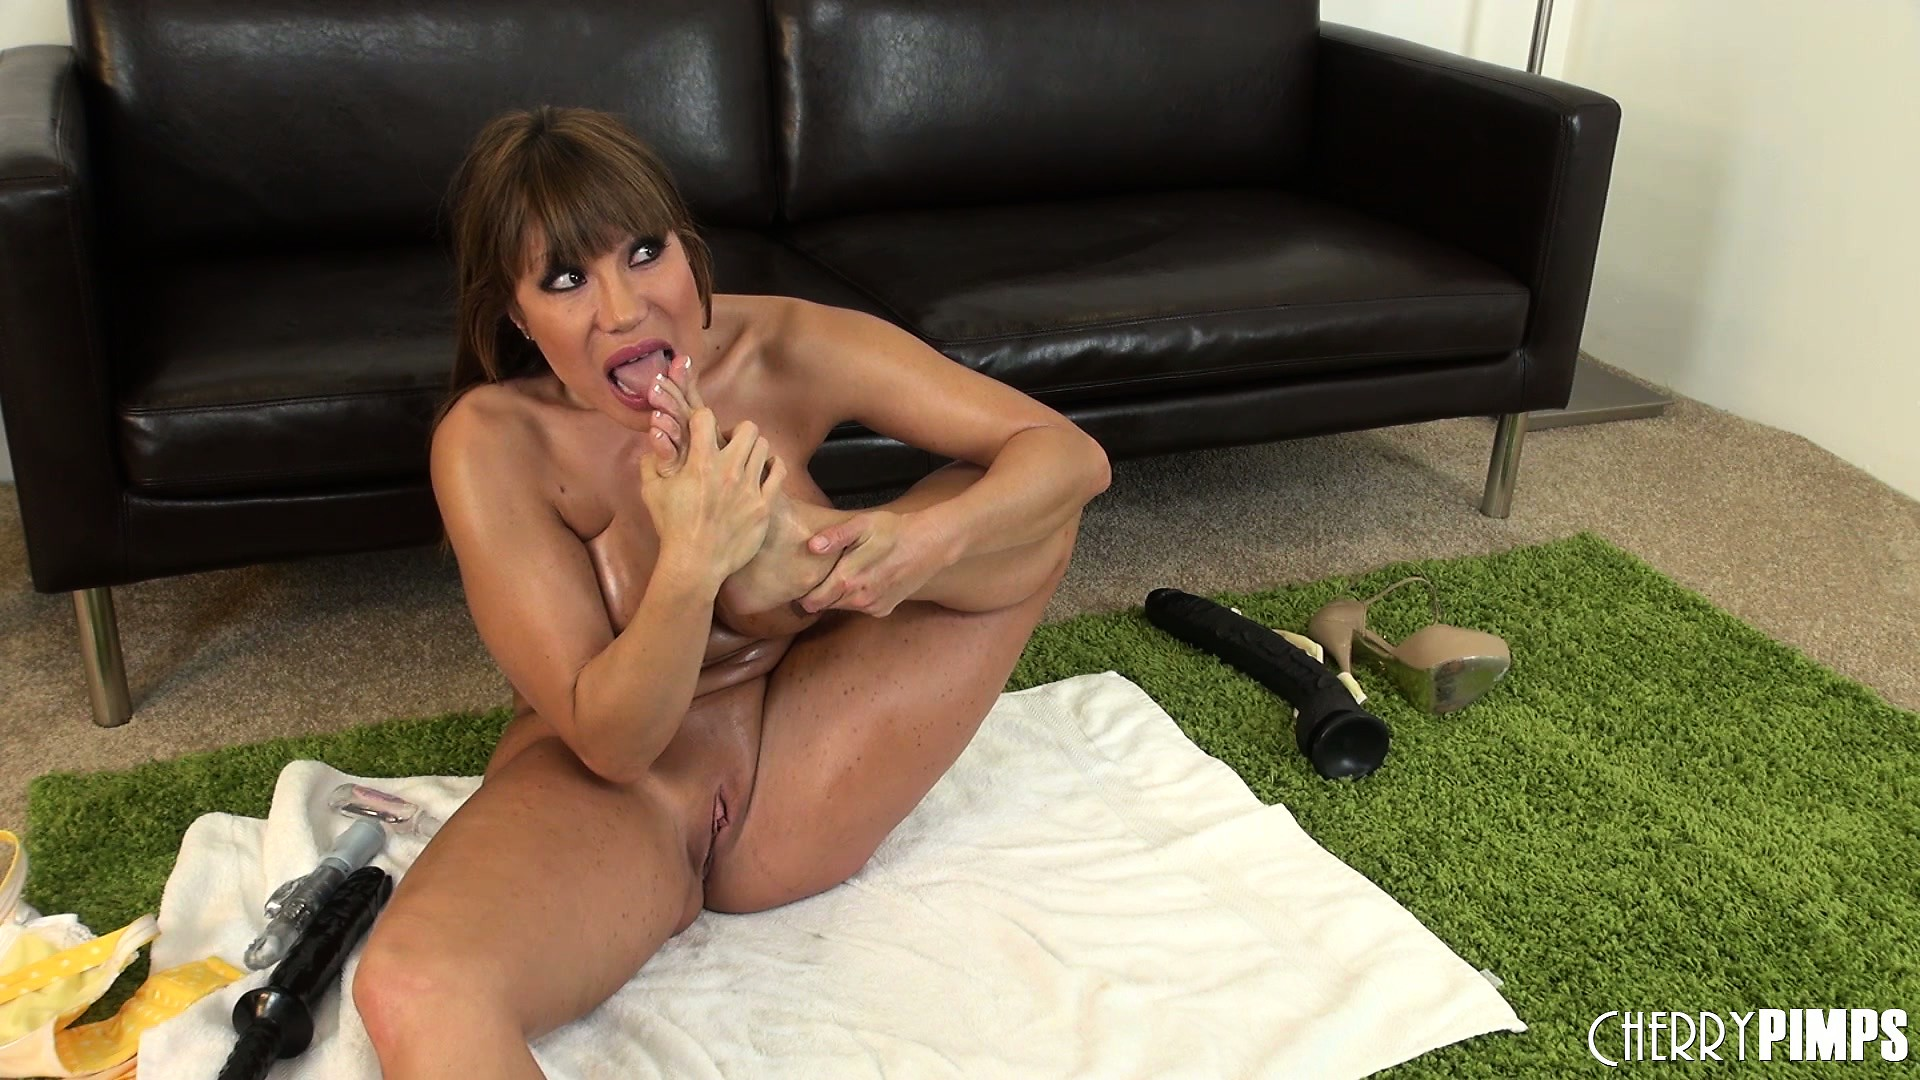 Porno Video of Hot Solo Action With Slutty Brunette Milf Ava Devine And Anal Toys